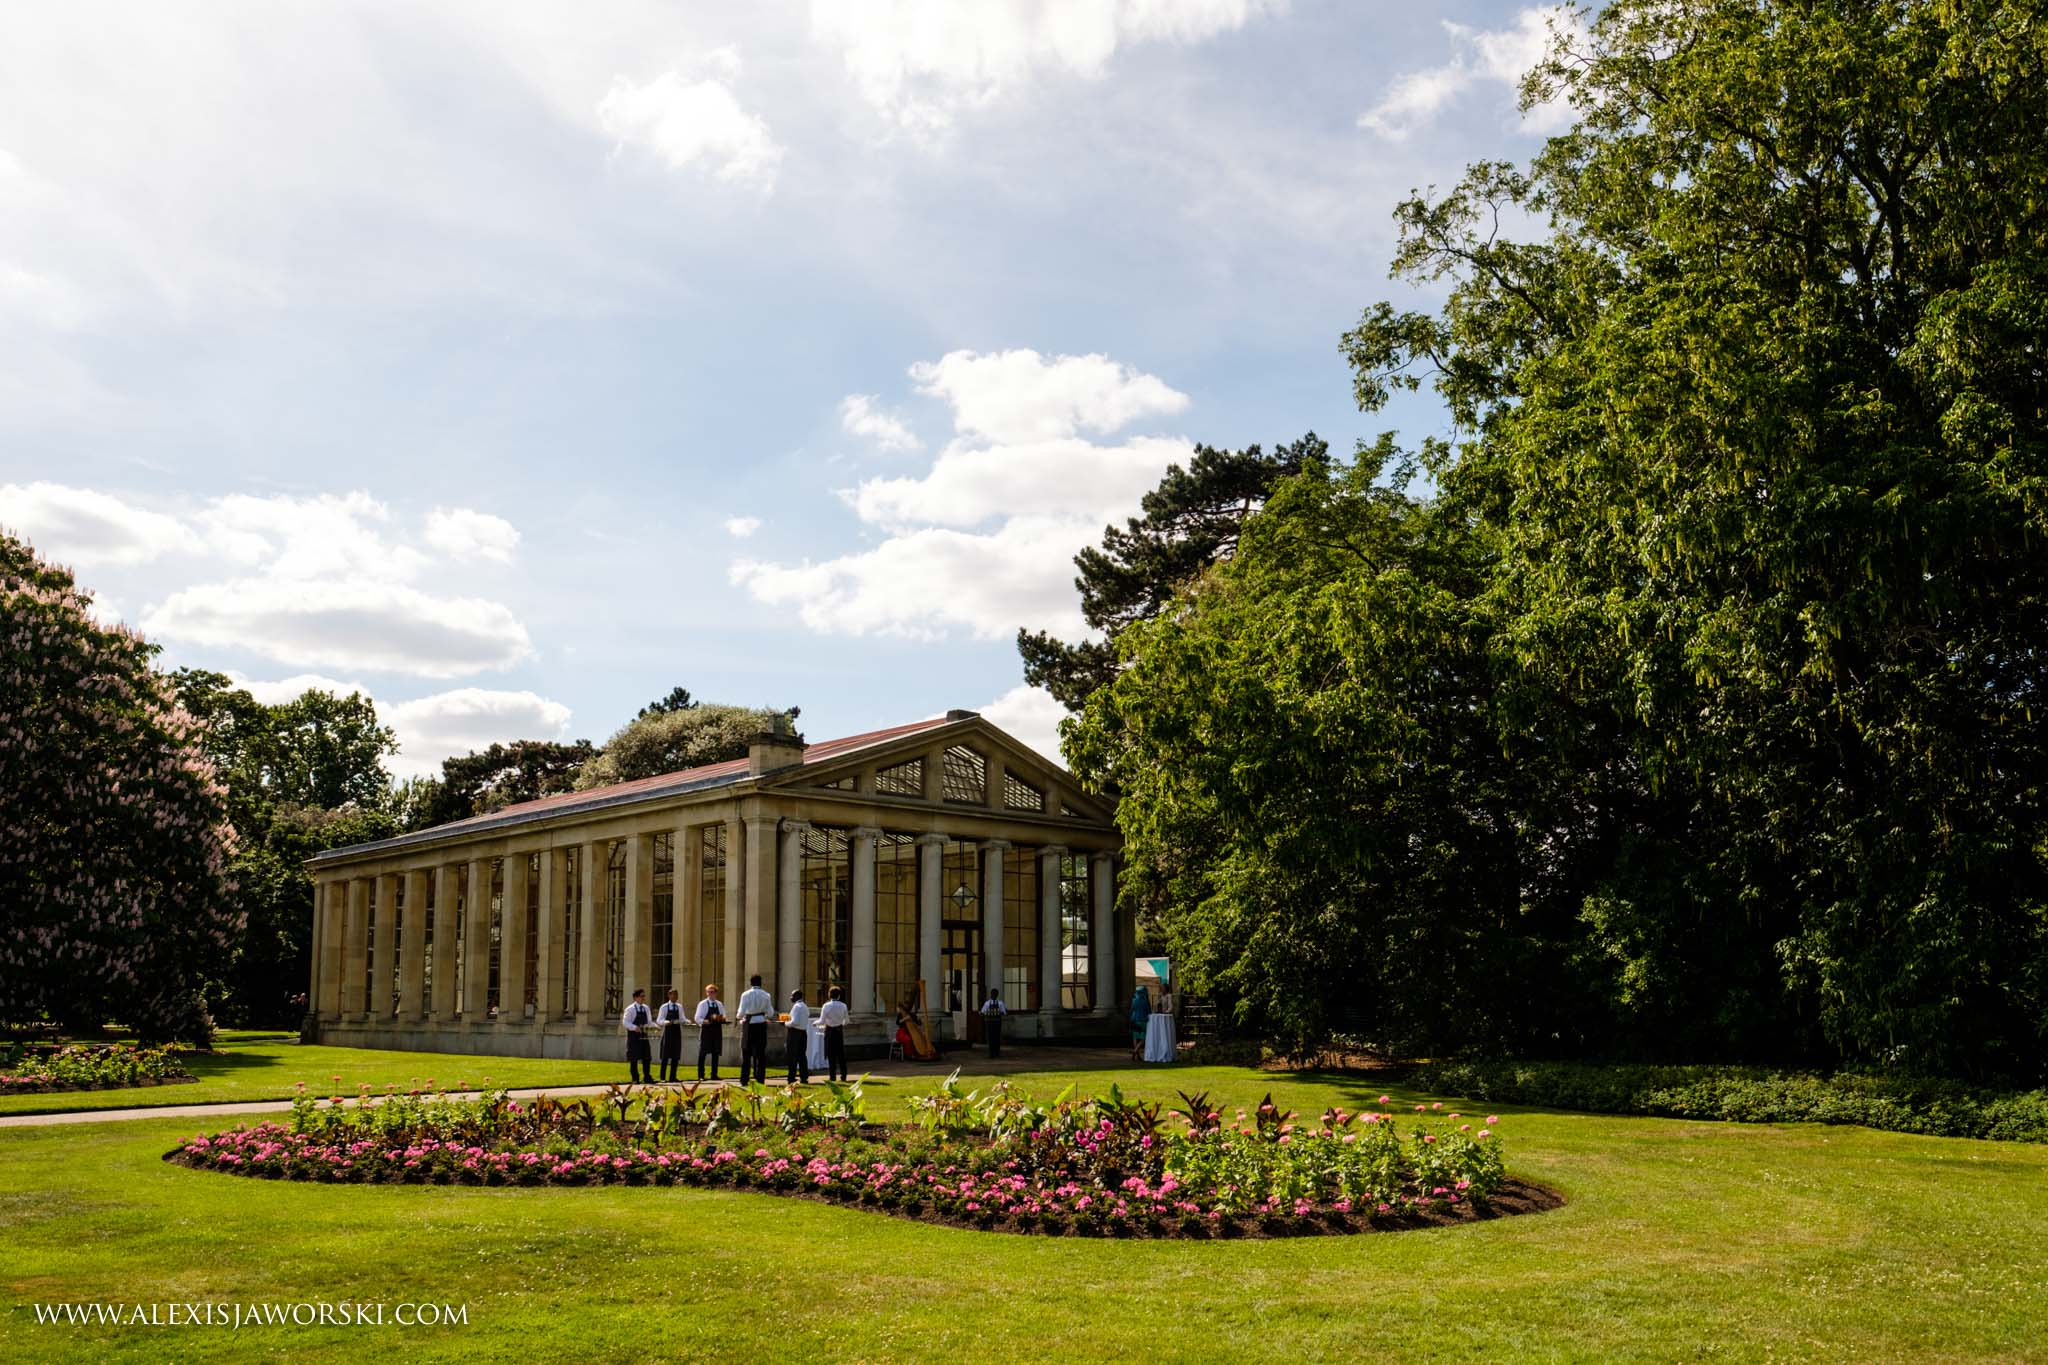 The Nash conservatory at Kew gardens